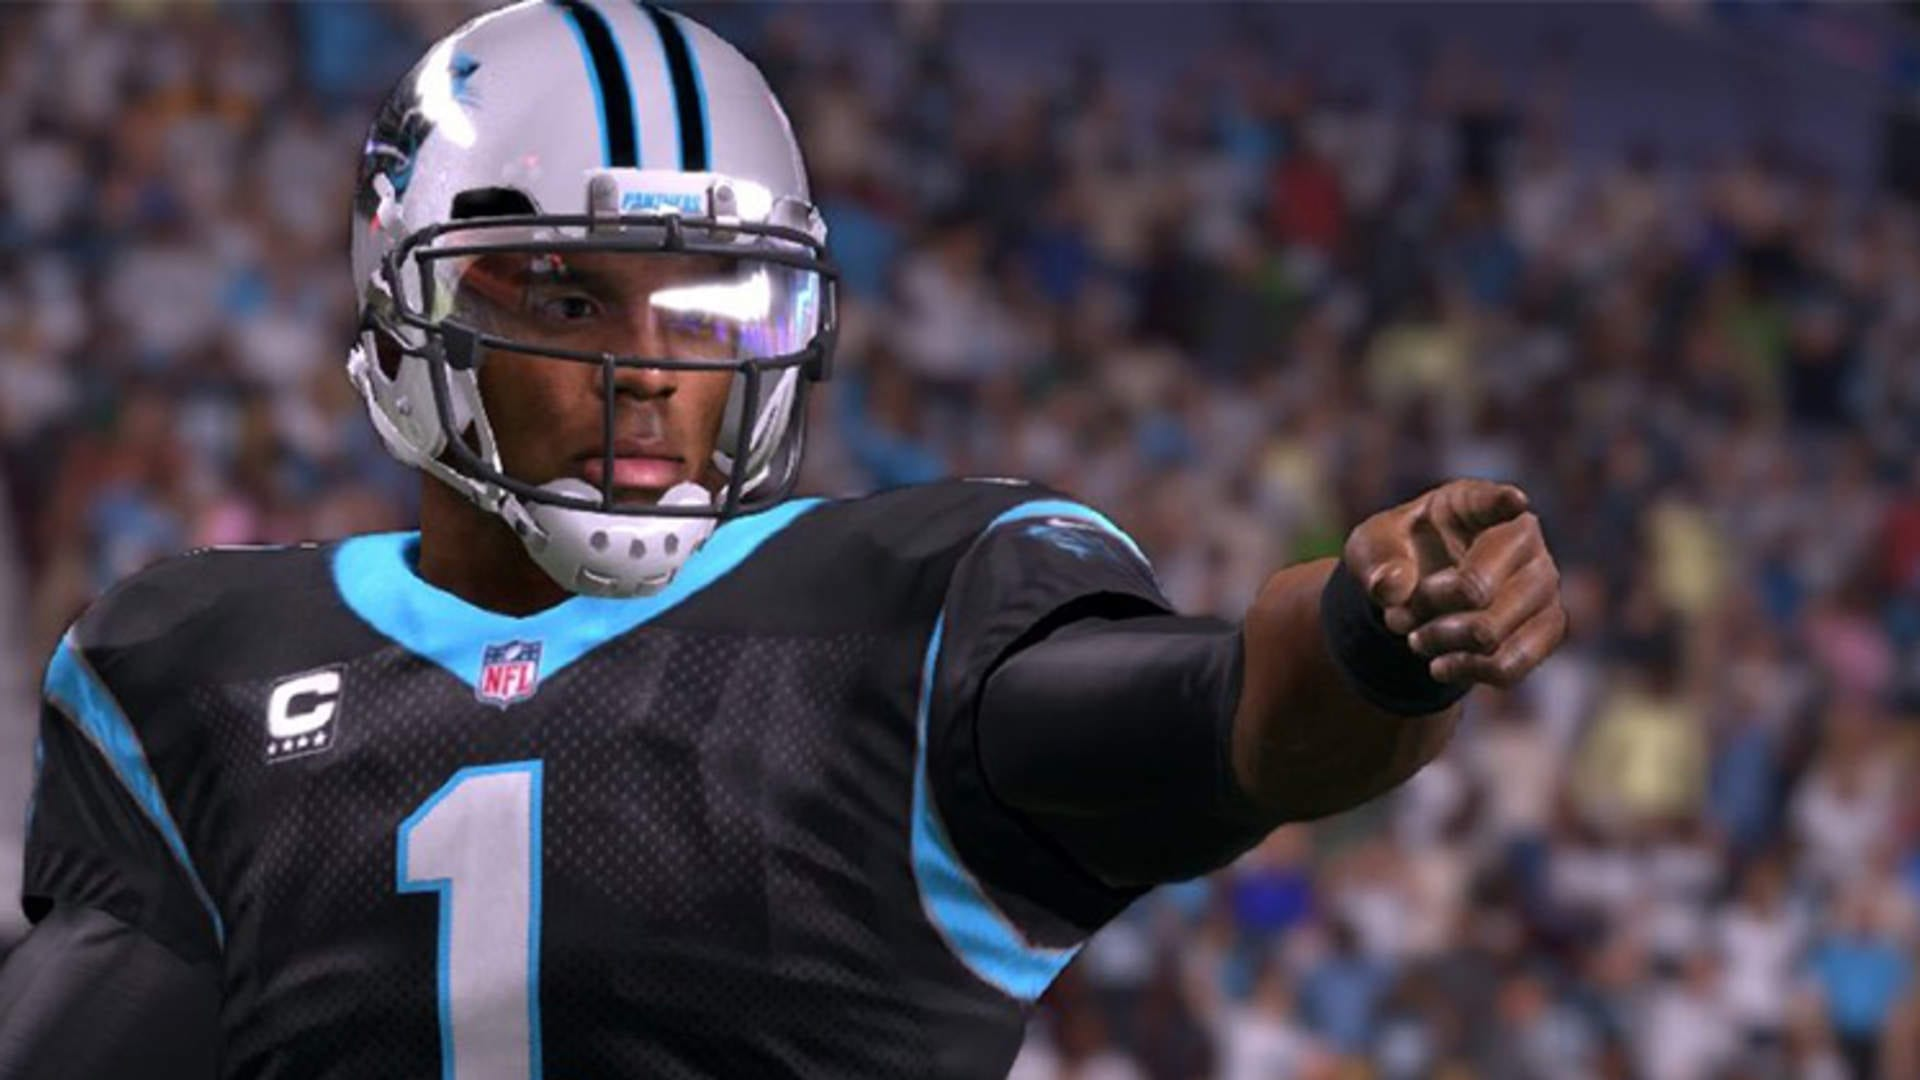 Madden 22 Pre Order, Release Date, Features, Editions And More To Know